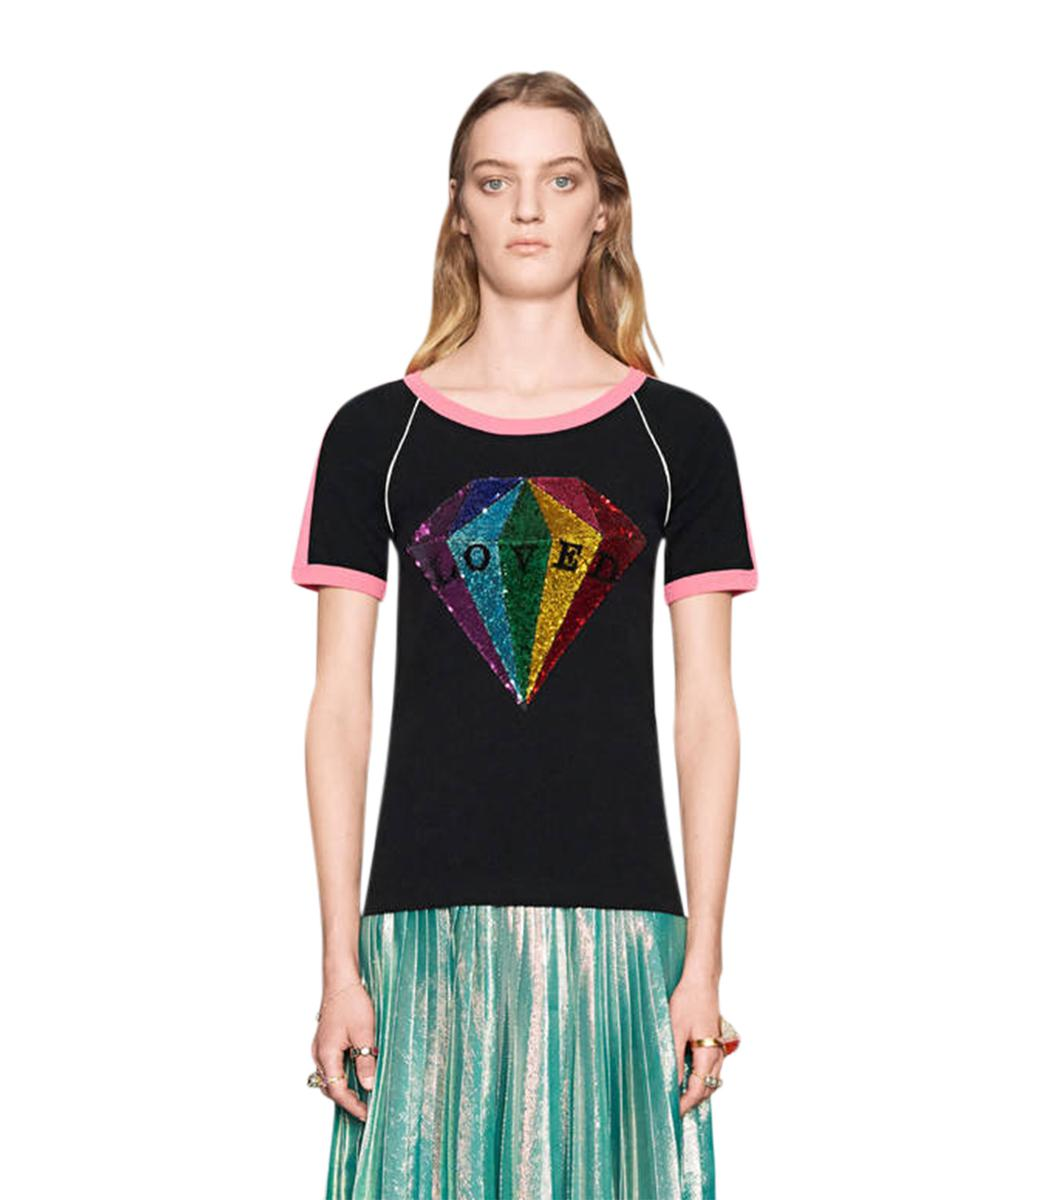 822af2aa Lyst - Gucci Black Sequin Diamond Cotton T-shirt in Black